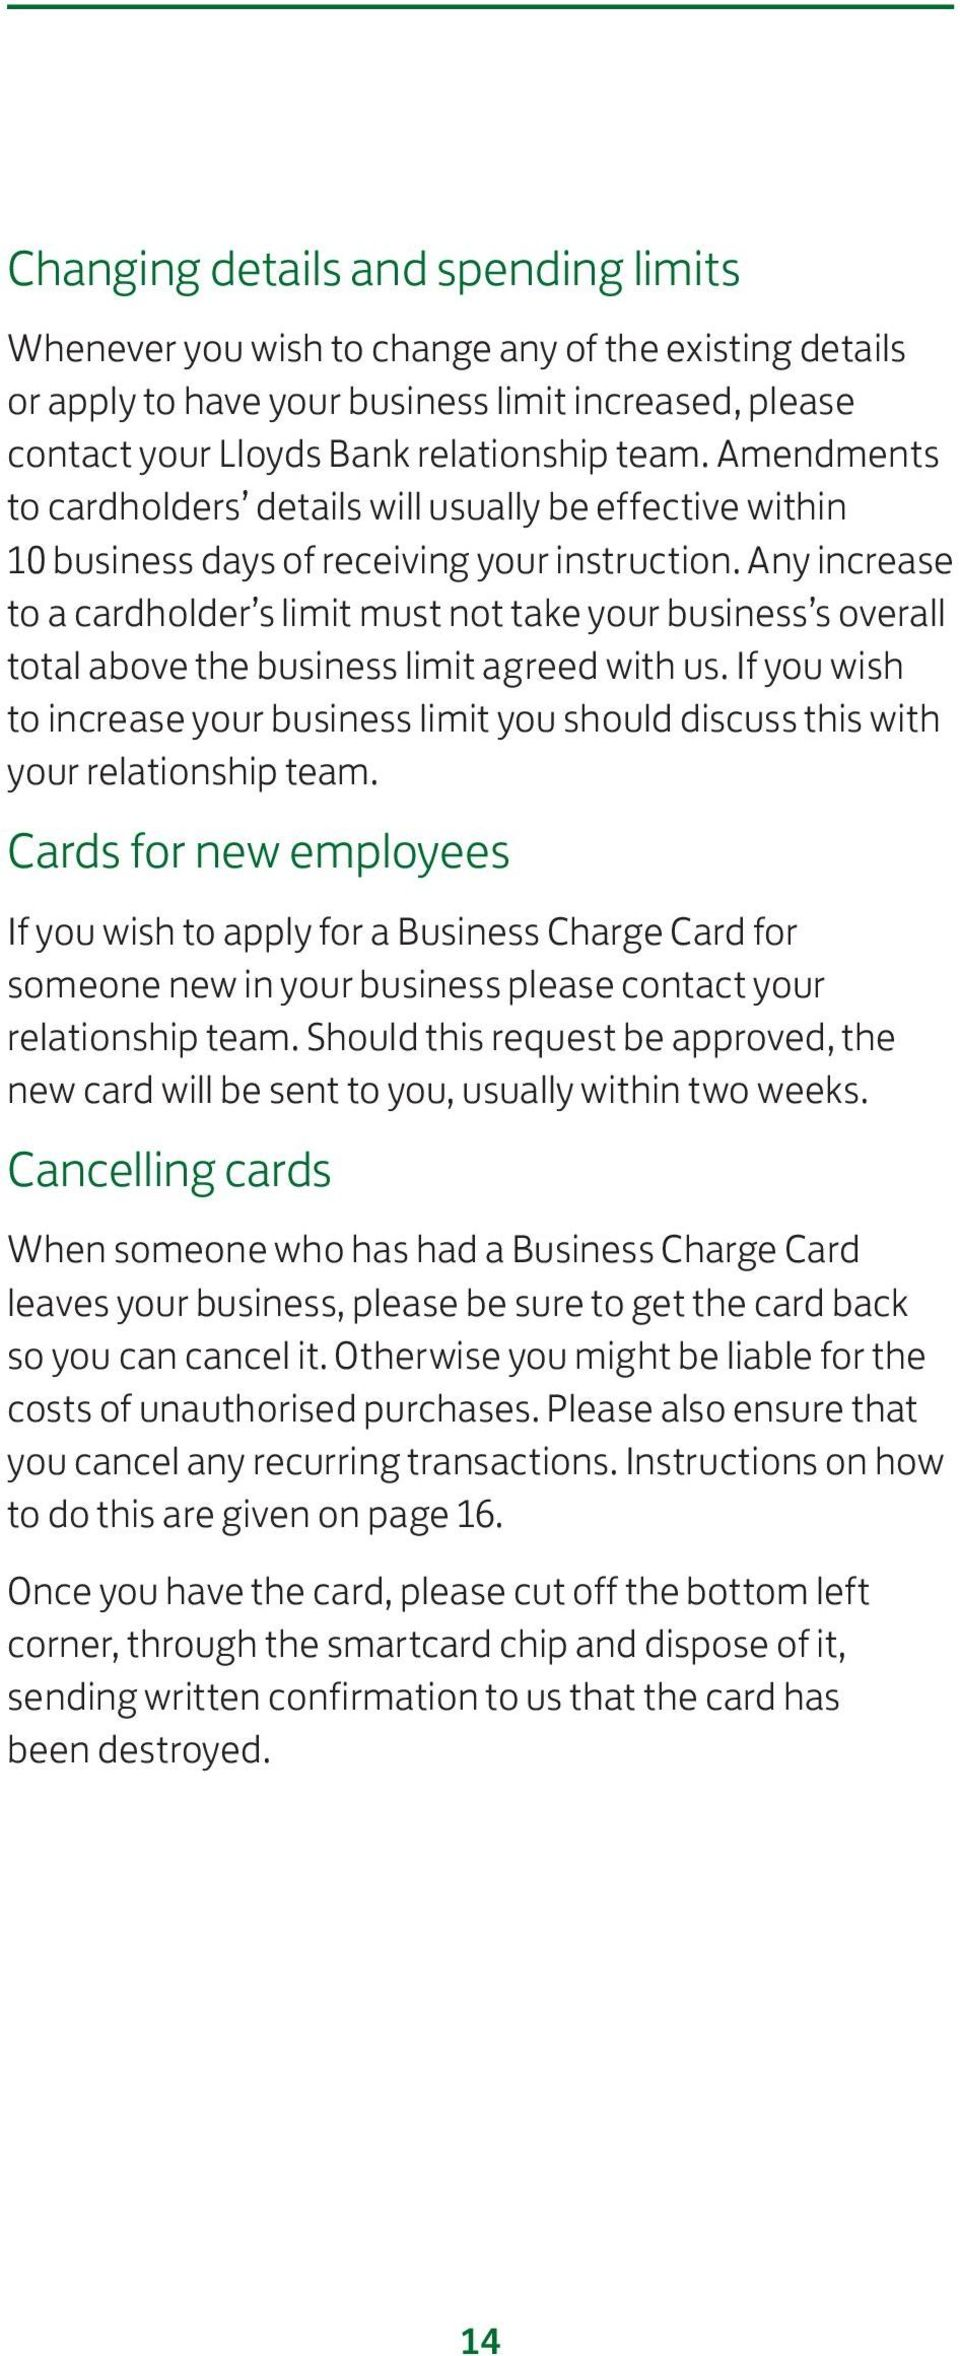 Any increase to a cardholder s limit must not take your business s overall total above the business limit agreed with us.